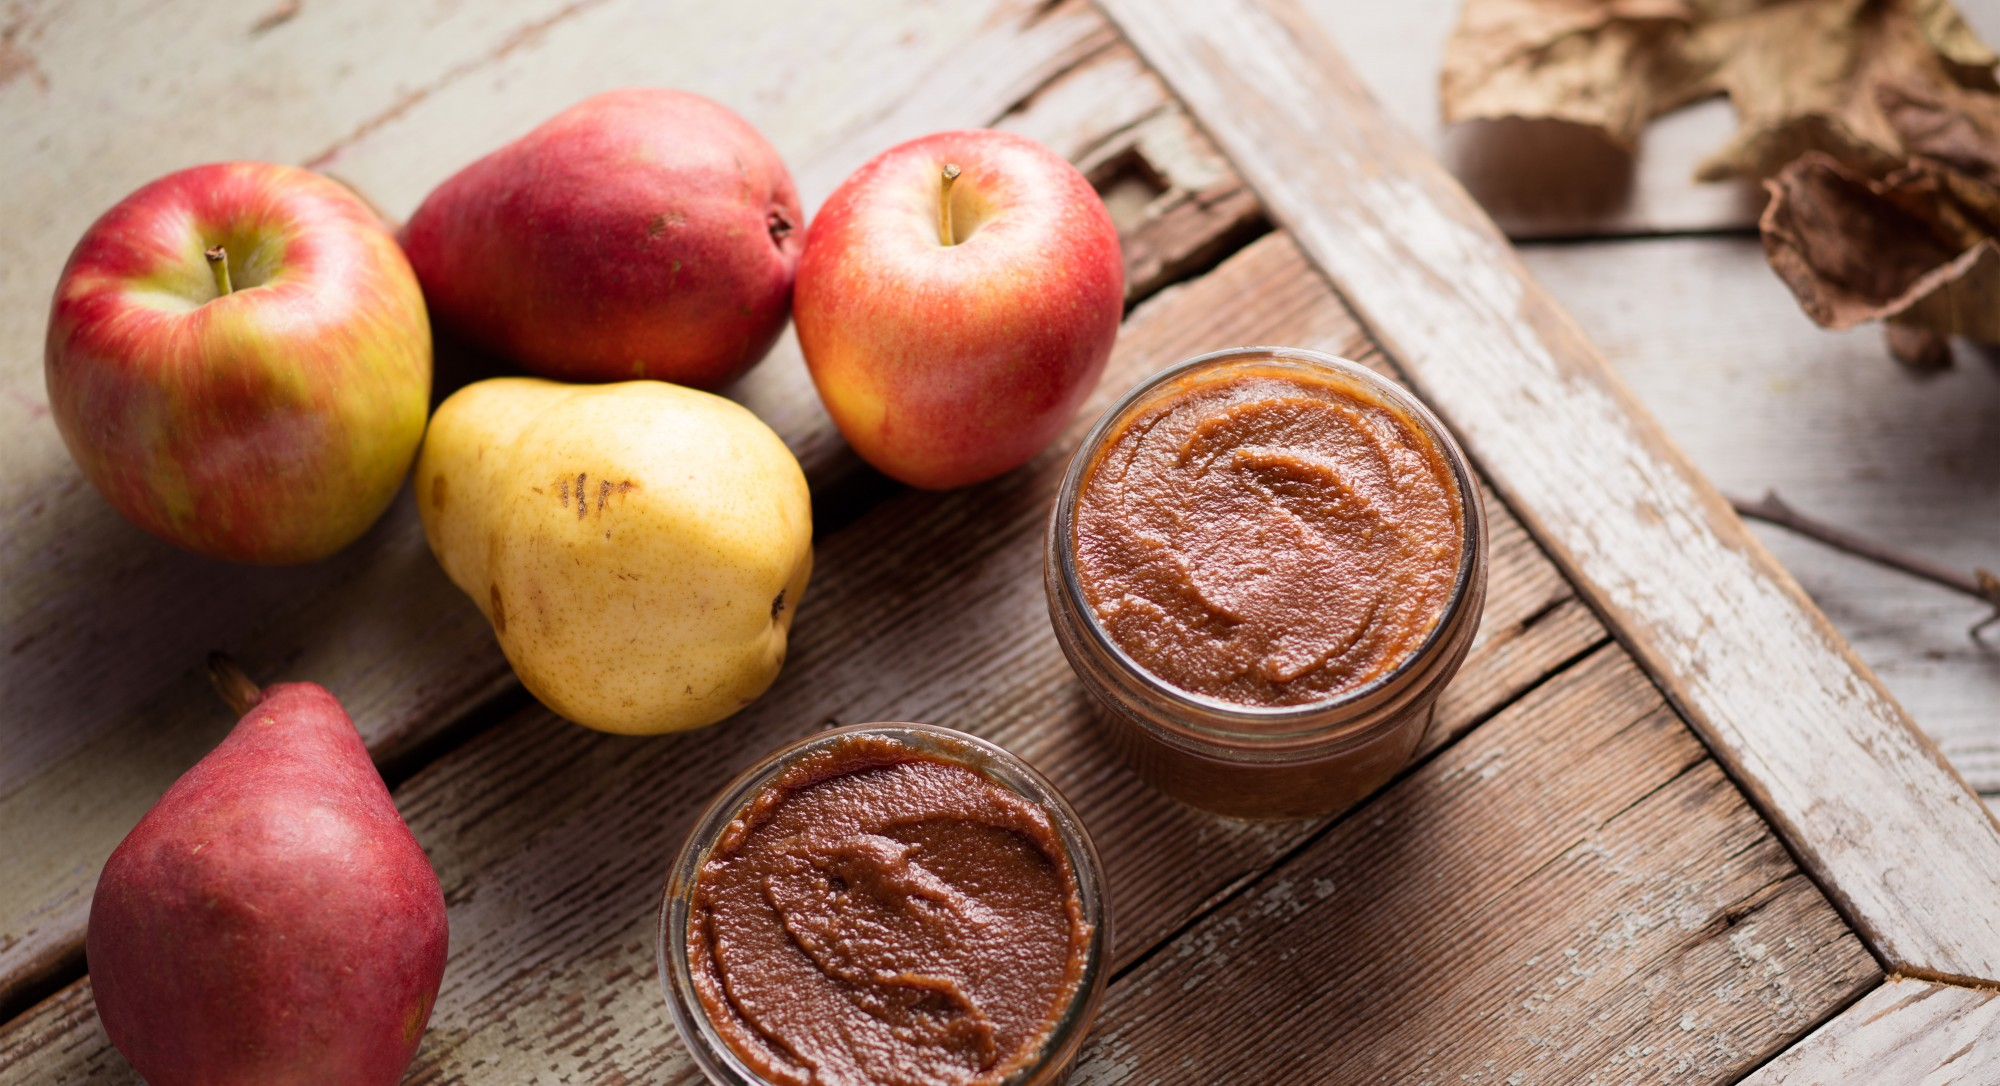 Slow cooker apple pear butter recipe thrive market for Apple pear recipes easy